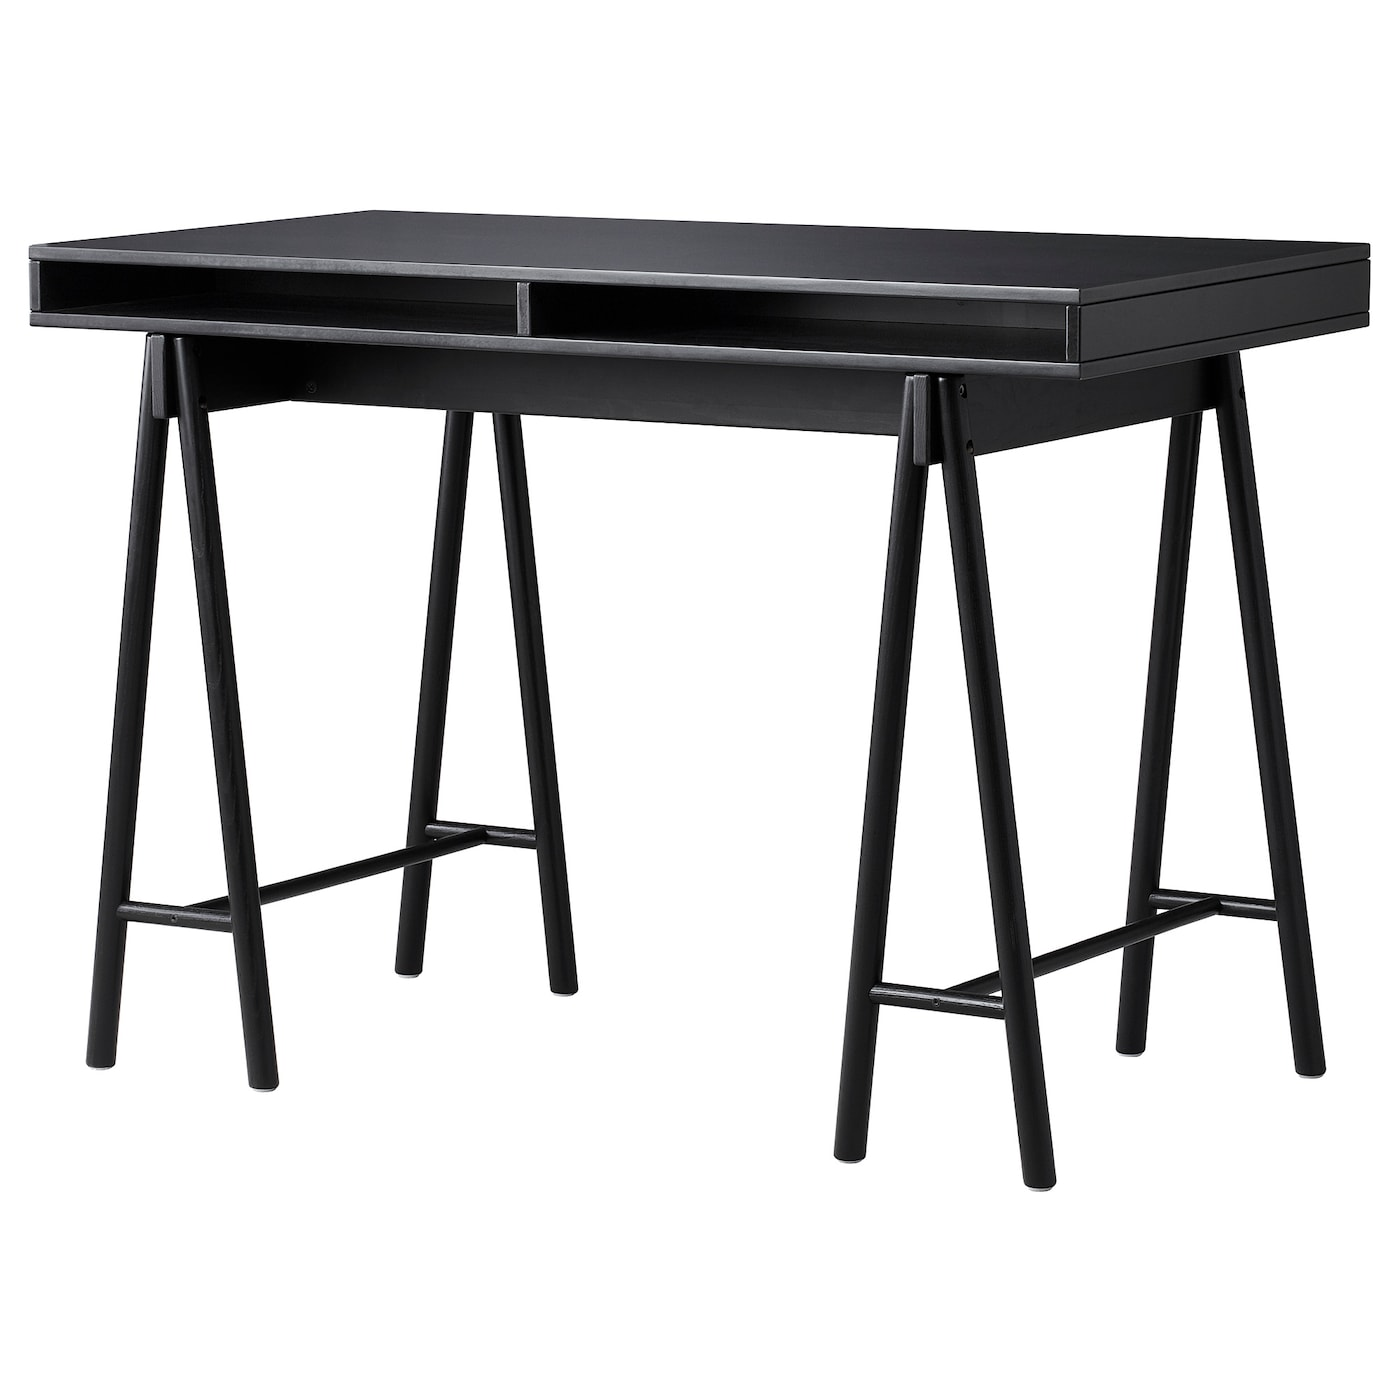 IKEA SPÄNST table top with trestles The clear-lacquered surface is easy to wipe clean.